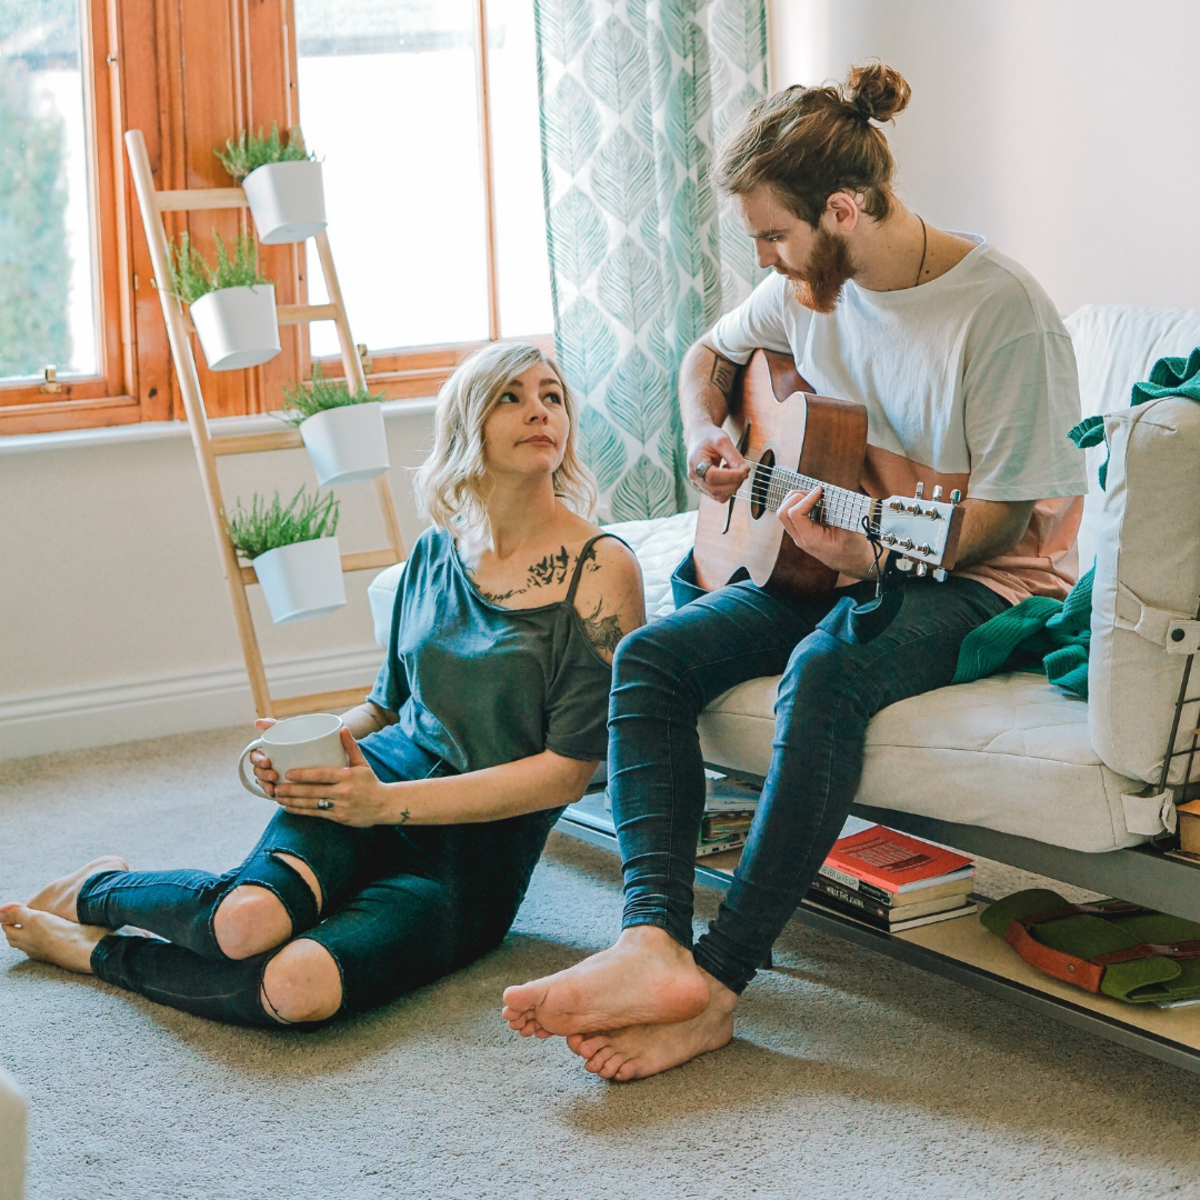 If you're so inclined, you can write your girlfriend a love song or cover one of her favorite songs. Just learn the chords and the vocal melody and you'll be set.